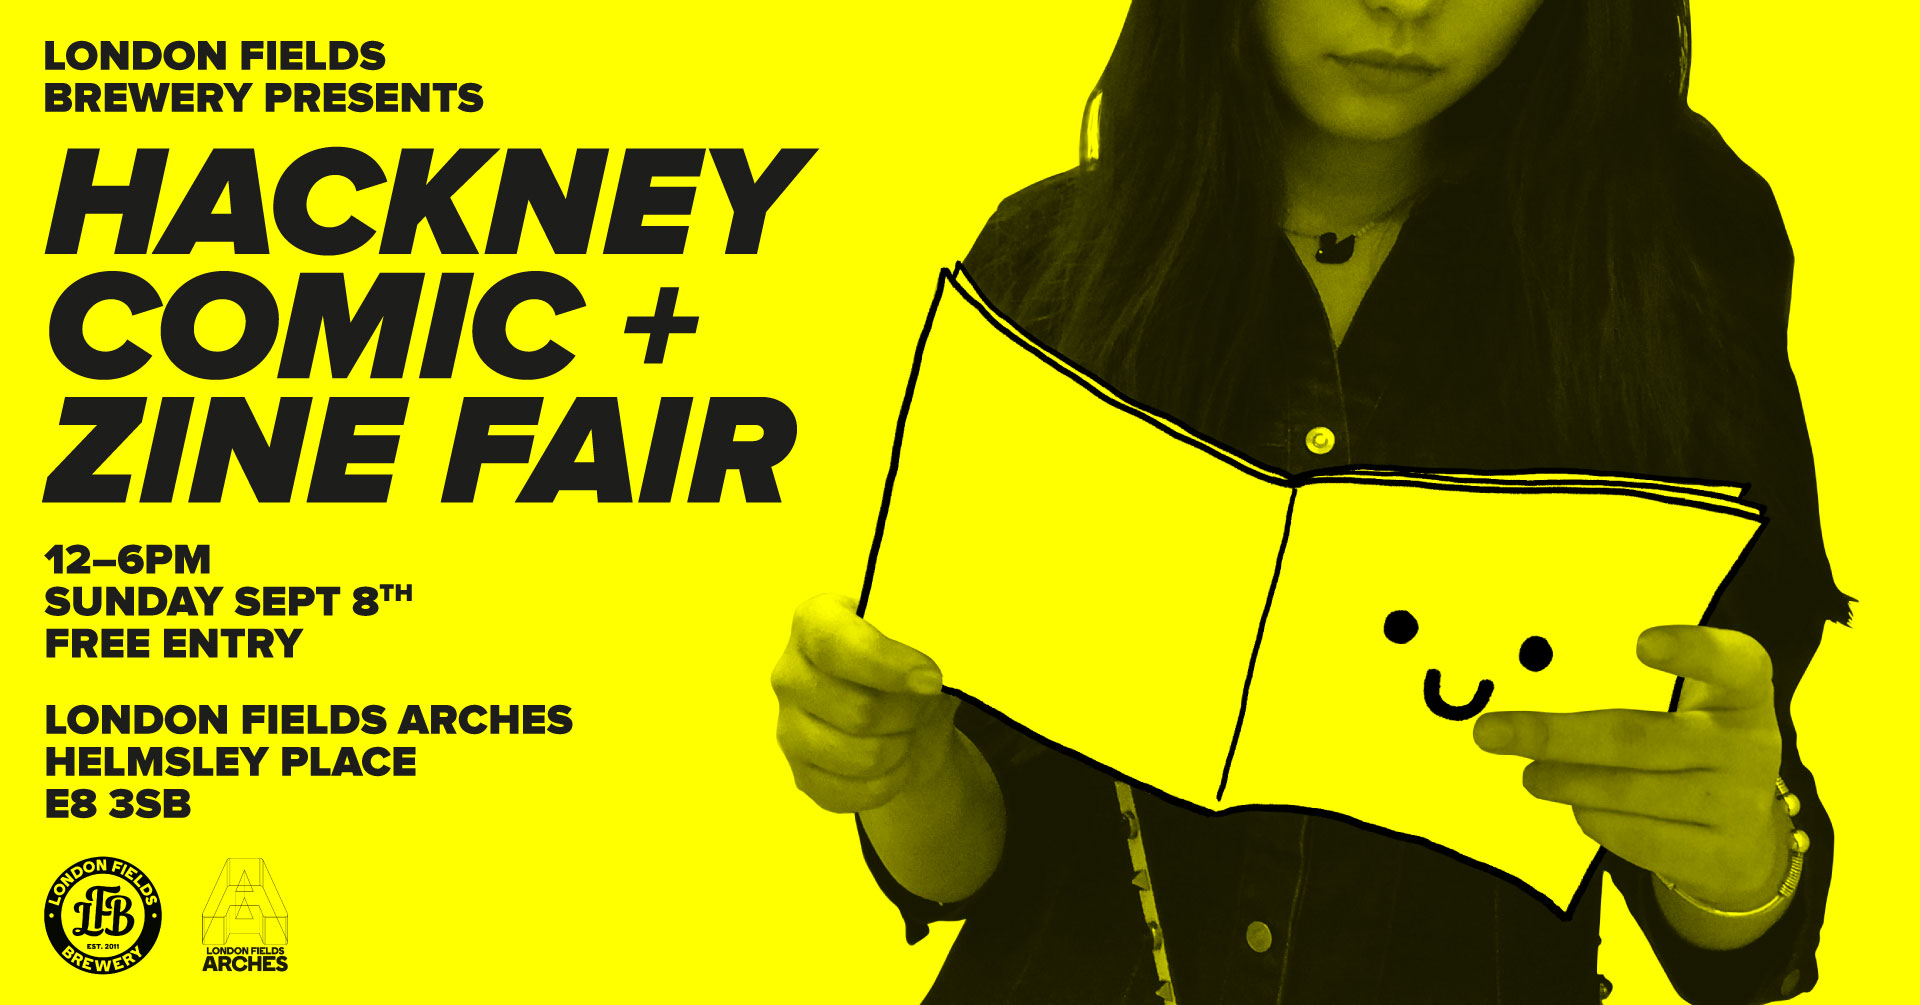 Hackney Comic + Zine Fair 2019